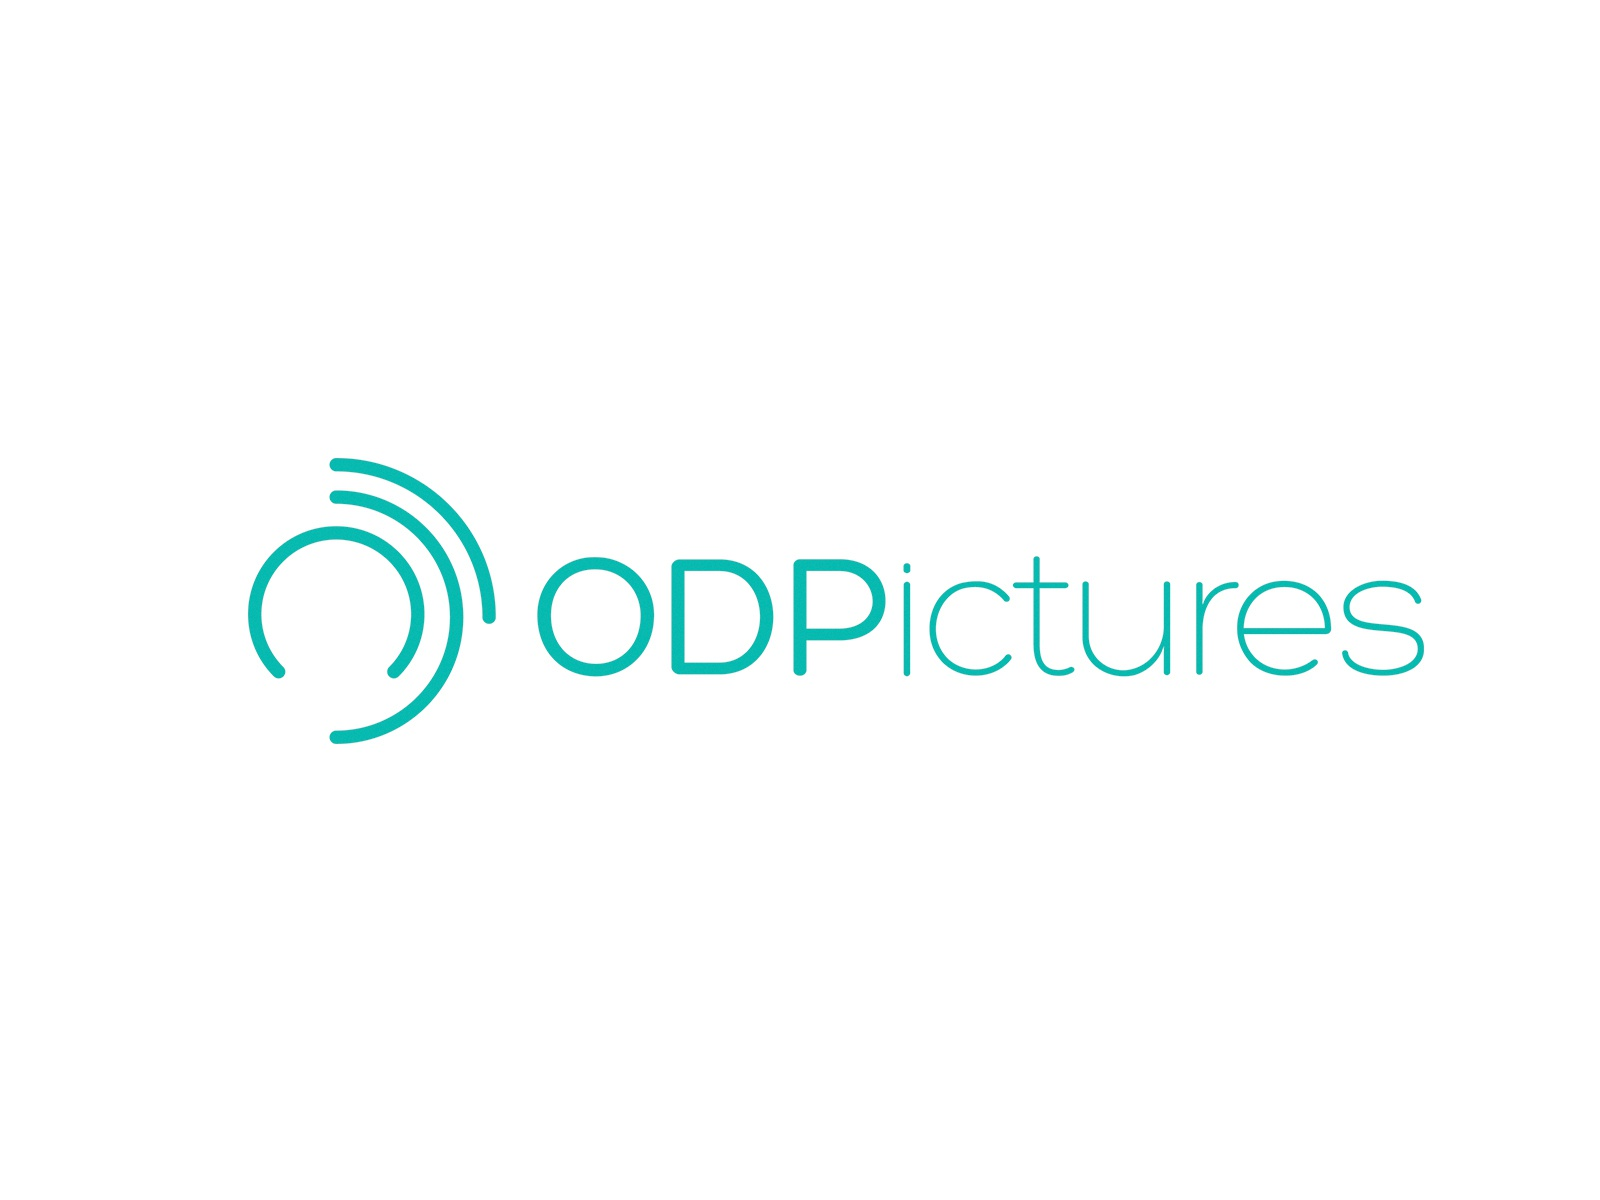 Odpictures logo 4x